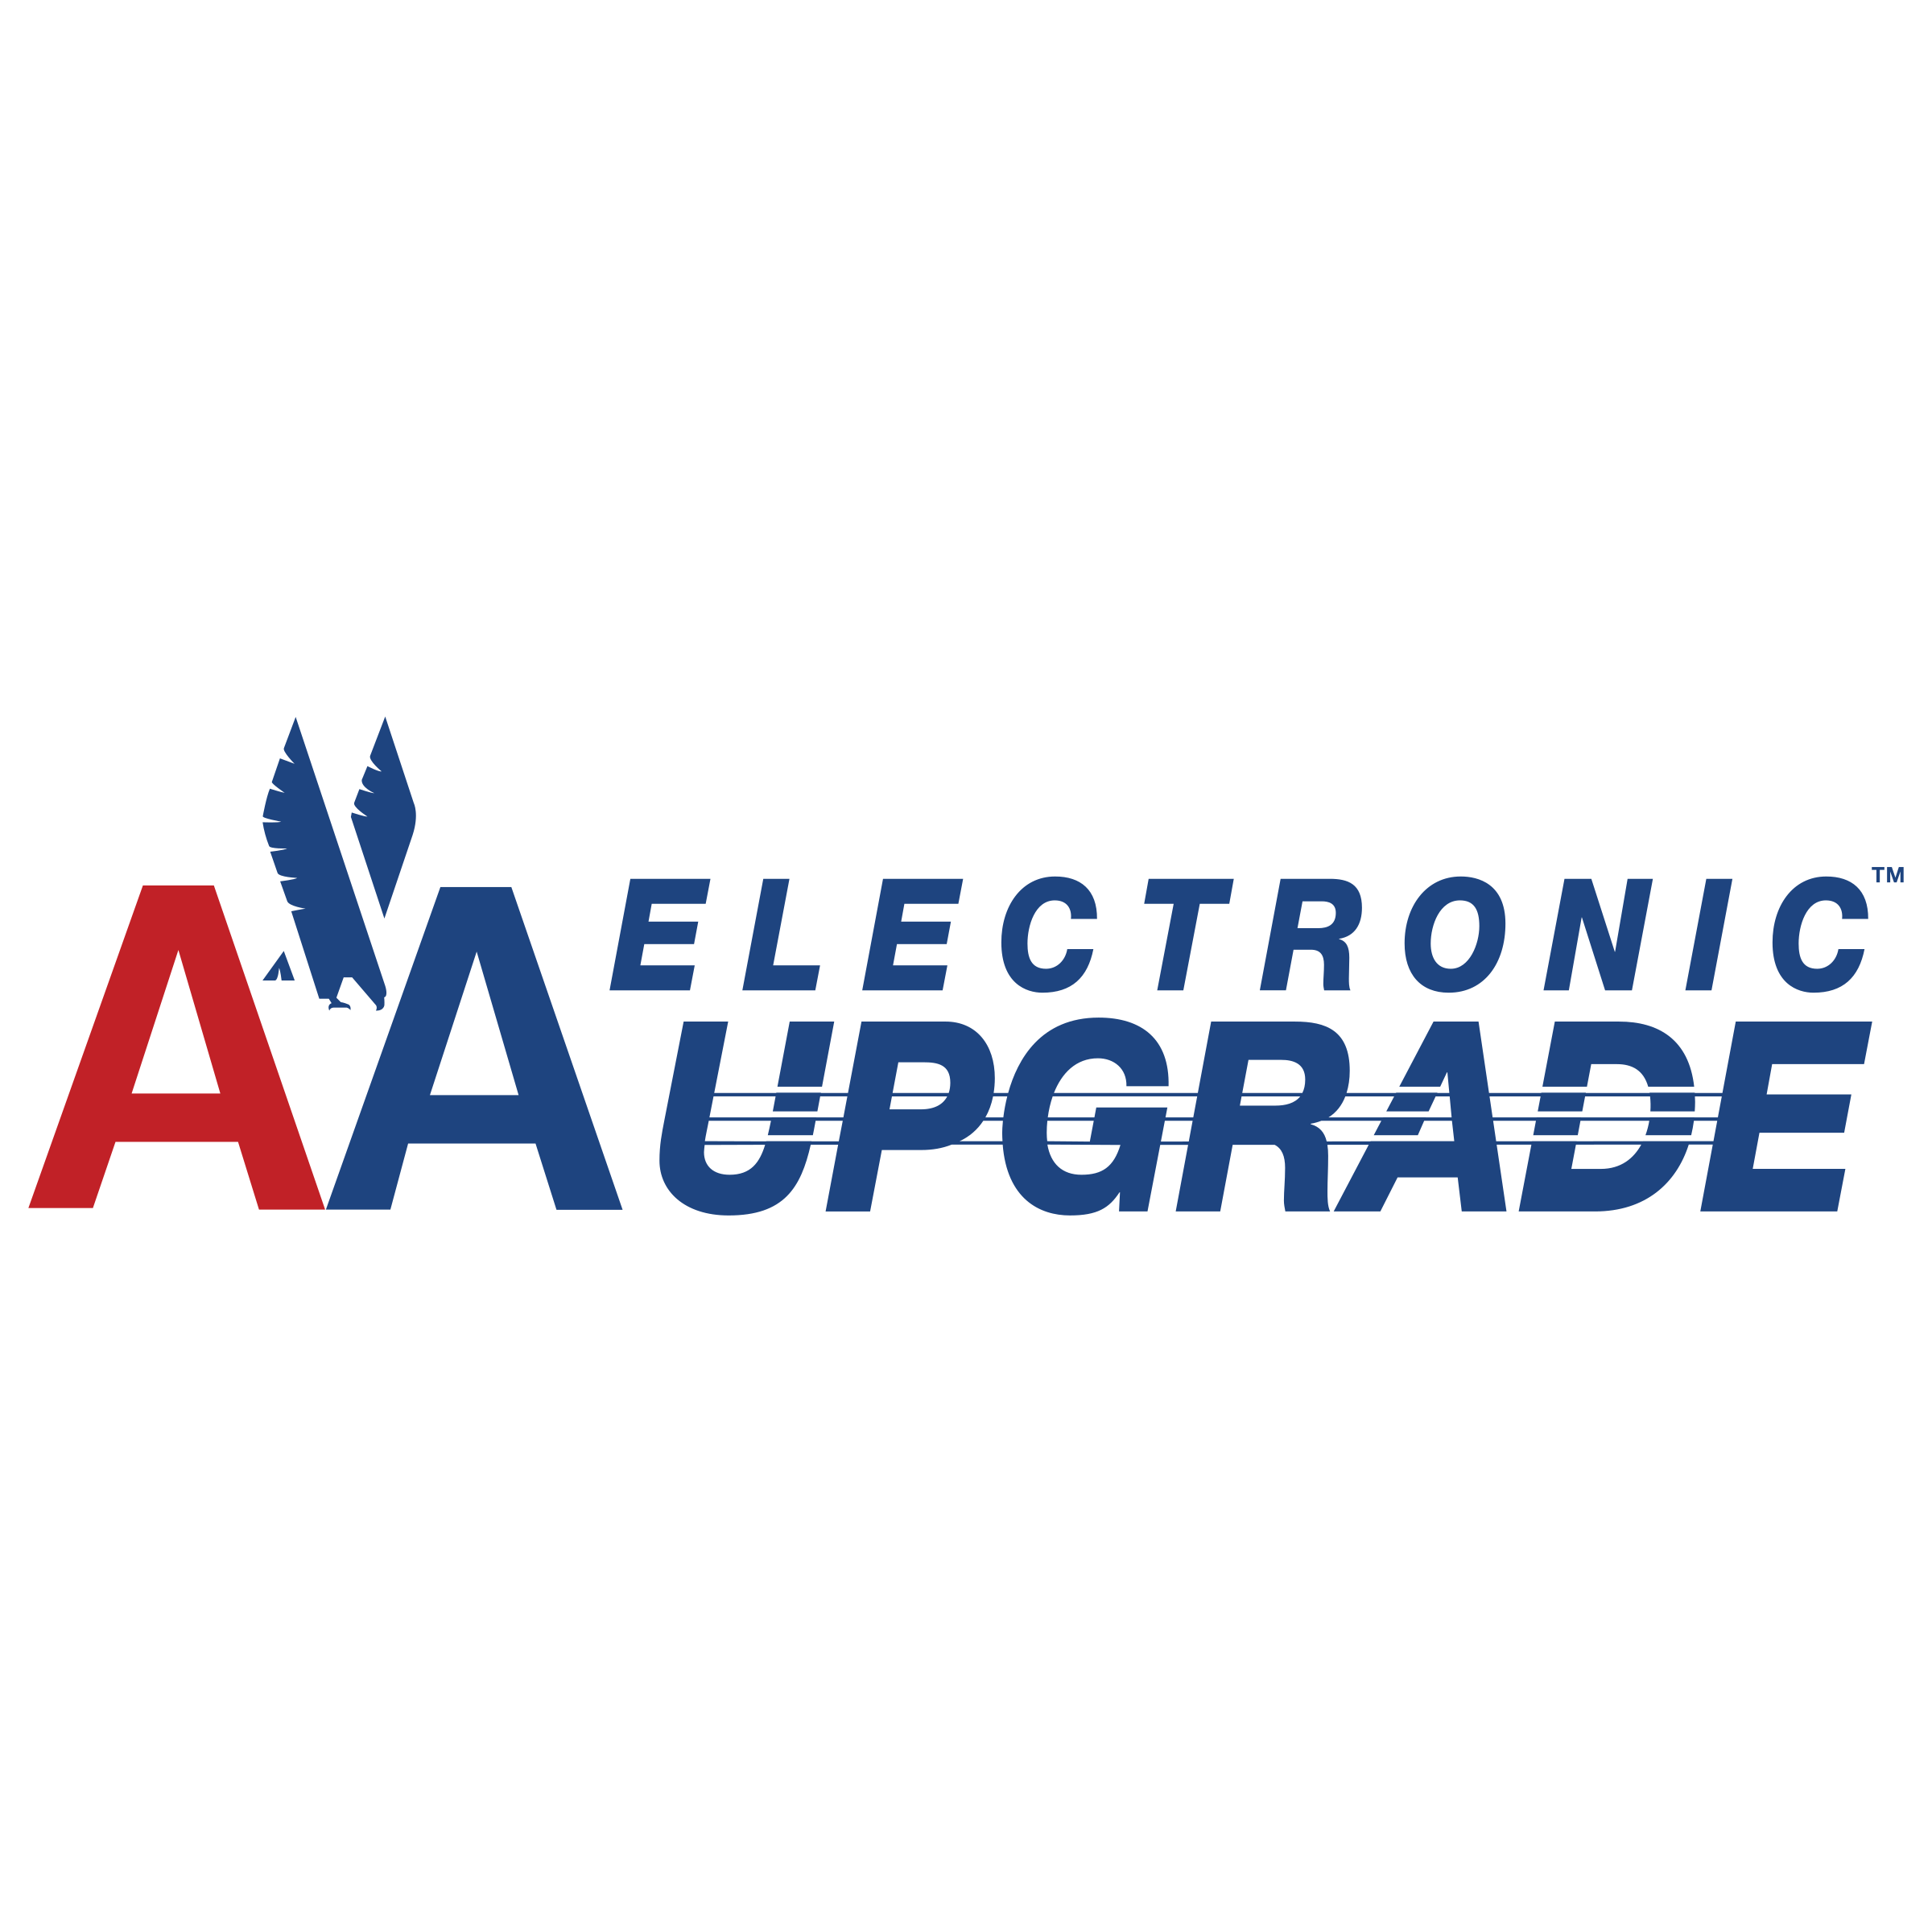 aa electronic upgrade logo png transparent svg vector freebie supply rh freebiesupply com electronic logs for sale electronic logos images